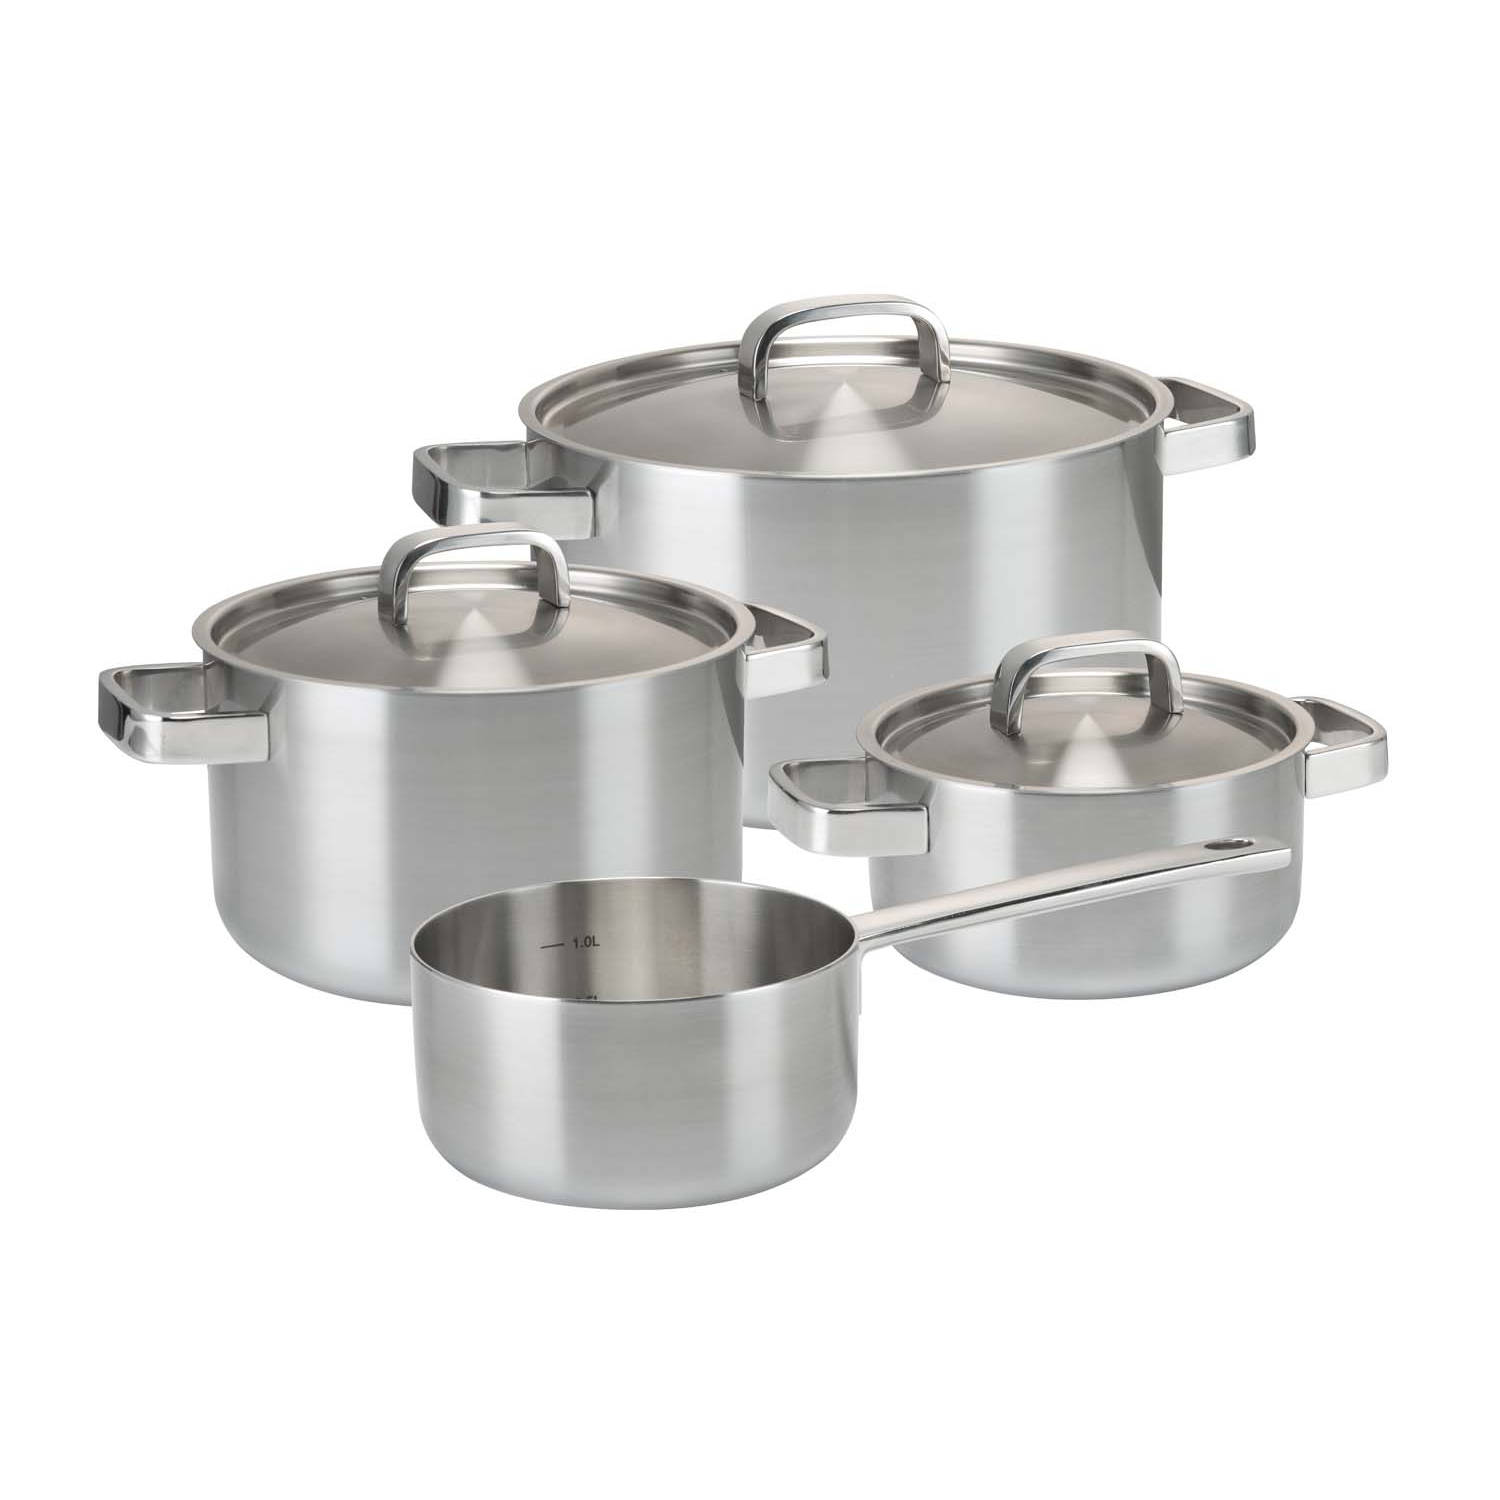 Bourgini Classic Cooking Pan Set Deluxe